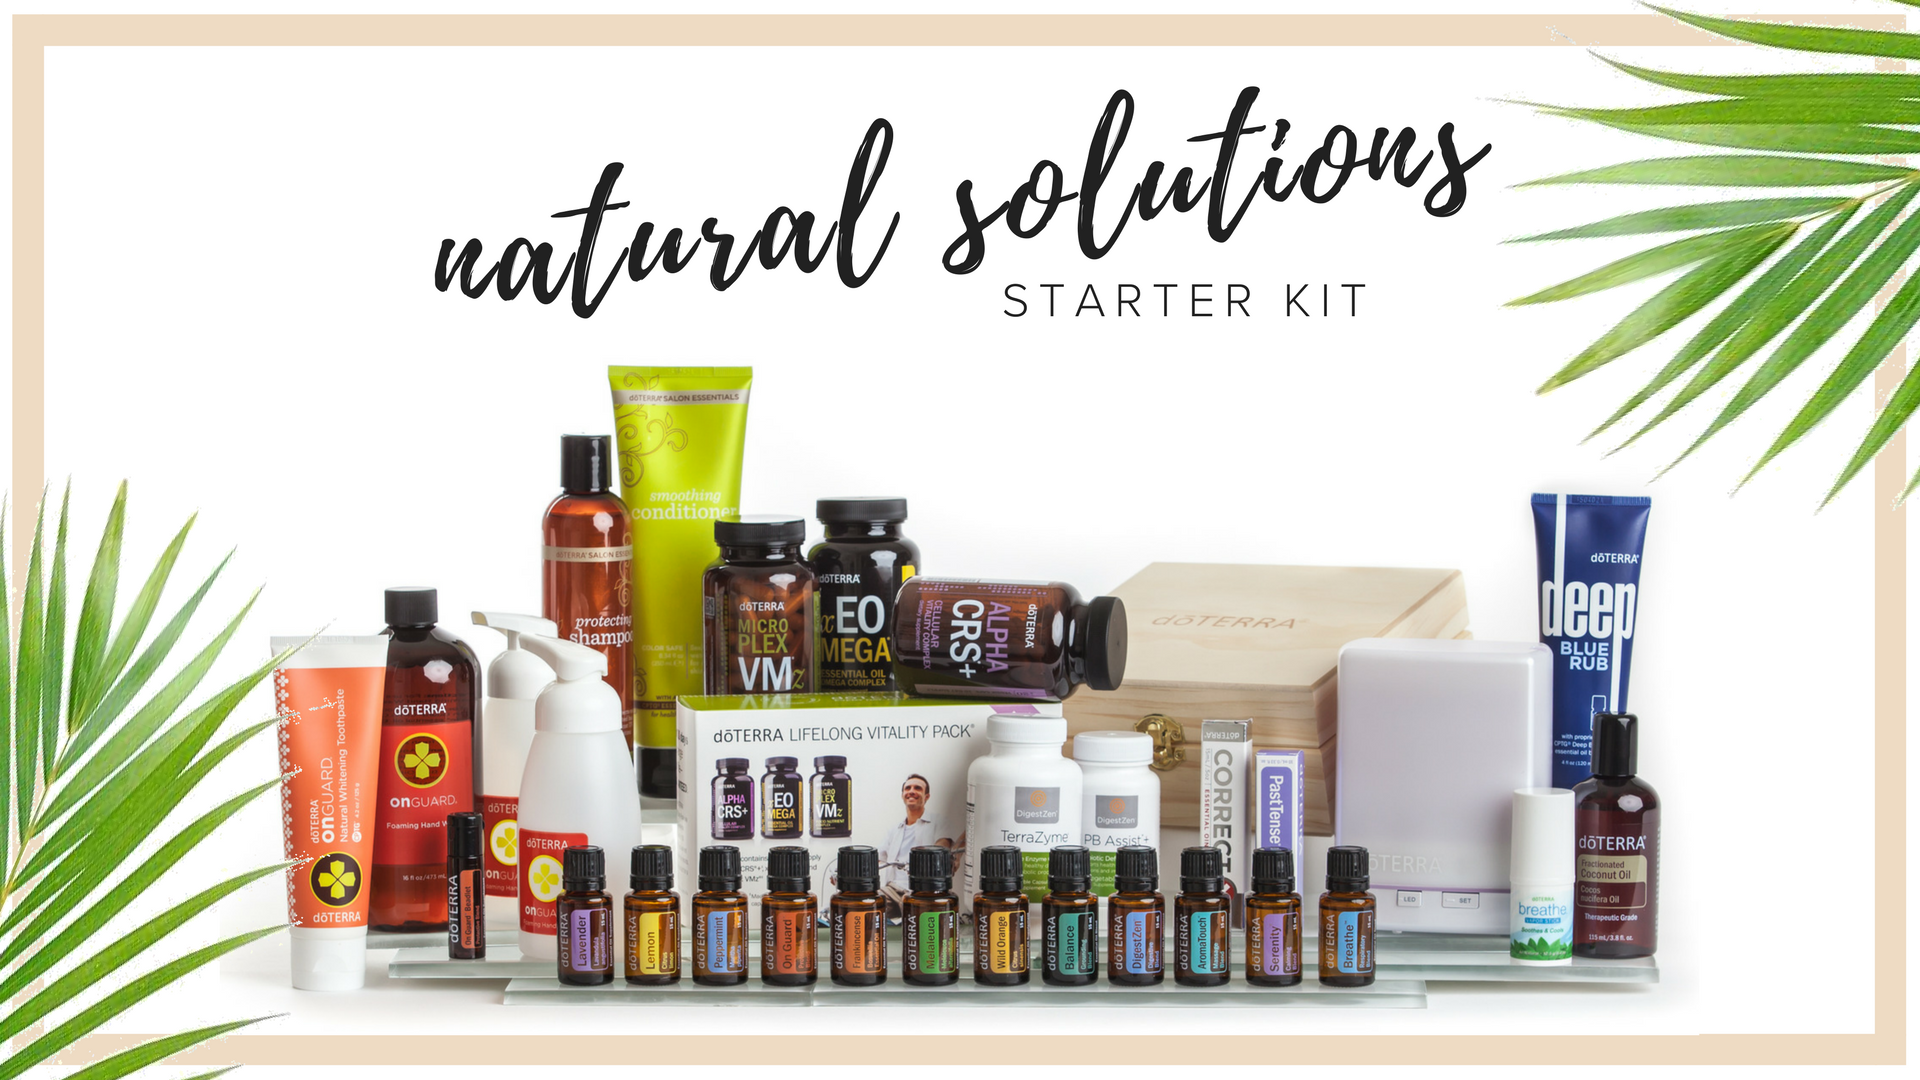 NATURAL SOLUTIONS KIT  This is by far my most popular kit, and the one i would have started with had it been available!This kit was put together specifically to help families who are ready to make the transition to a natural lifestyle and are ready to start uleveling lots of different areas in their life. For example, you'll receive a lot of the mood oils, the foundational oils for immune system support, past tense oil for relieving tension, the Clary Calm to support women and balancing their beautiful hormones, correctX, Lifelong Vitality Pack, an 8 hour diffuser, my fave OnGuard products like foaming hand wash and toothpaste, fractionated coconut oil for diluting for sensitive skin and children, TerraZyme and pb assist for gut health, our sulfate free shampoo and conditioner, everyone's fave deep blue rub,plus a beautiful wooden storage box for your oils.  Retail Cost $733. Wholesale Kit Price $500. $233 in Savings plus you're eligible to receive an additional $100 in product credits when you place your 100 pv Loyalty Rewards order the following month and you jump on the Fast track at 15%rebate on loyalty orders.  all new memberships include Exclusive aila love welcome gifts, a personal consultation with maile, ongoing education opportunities & a support community.